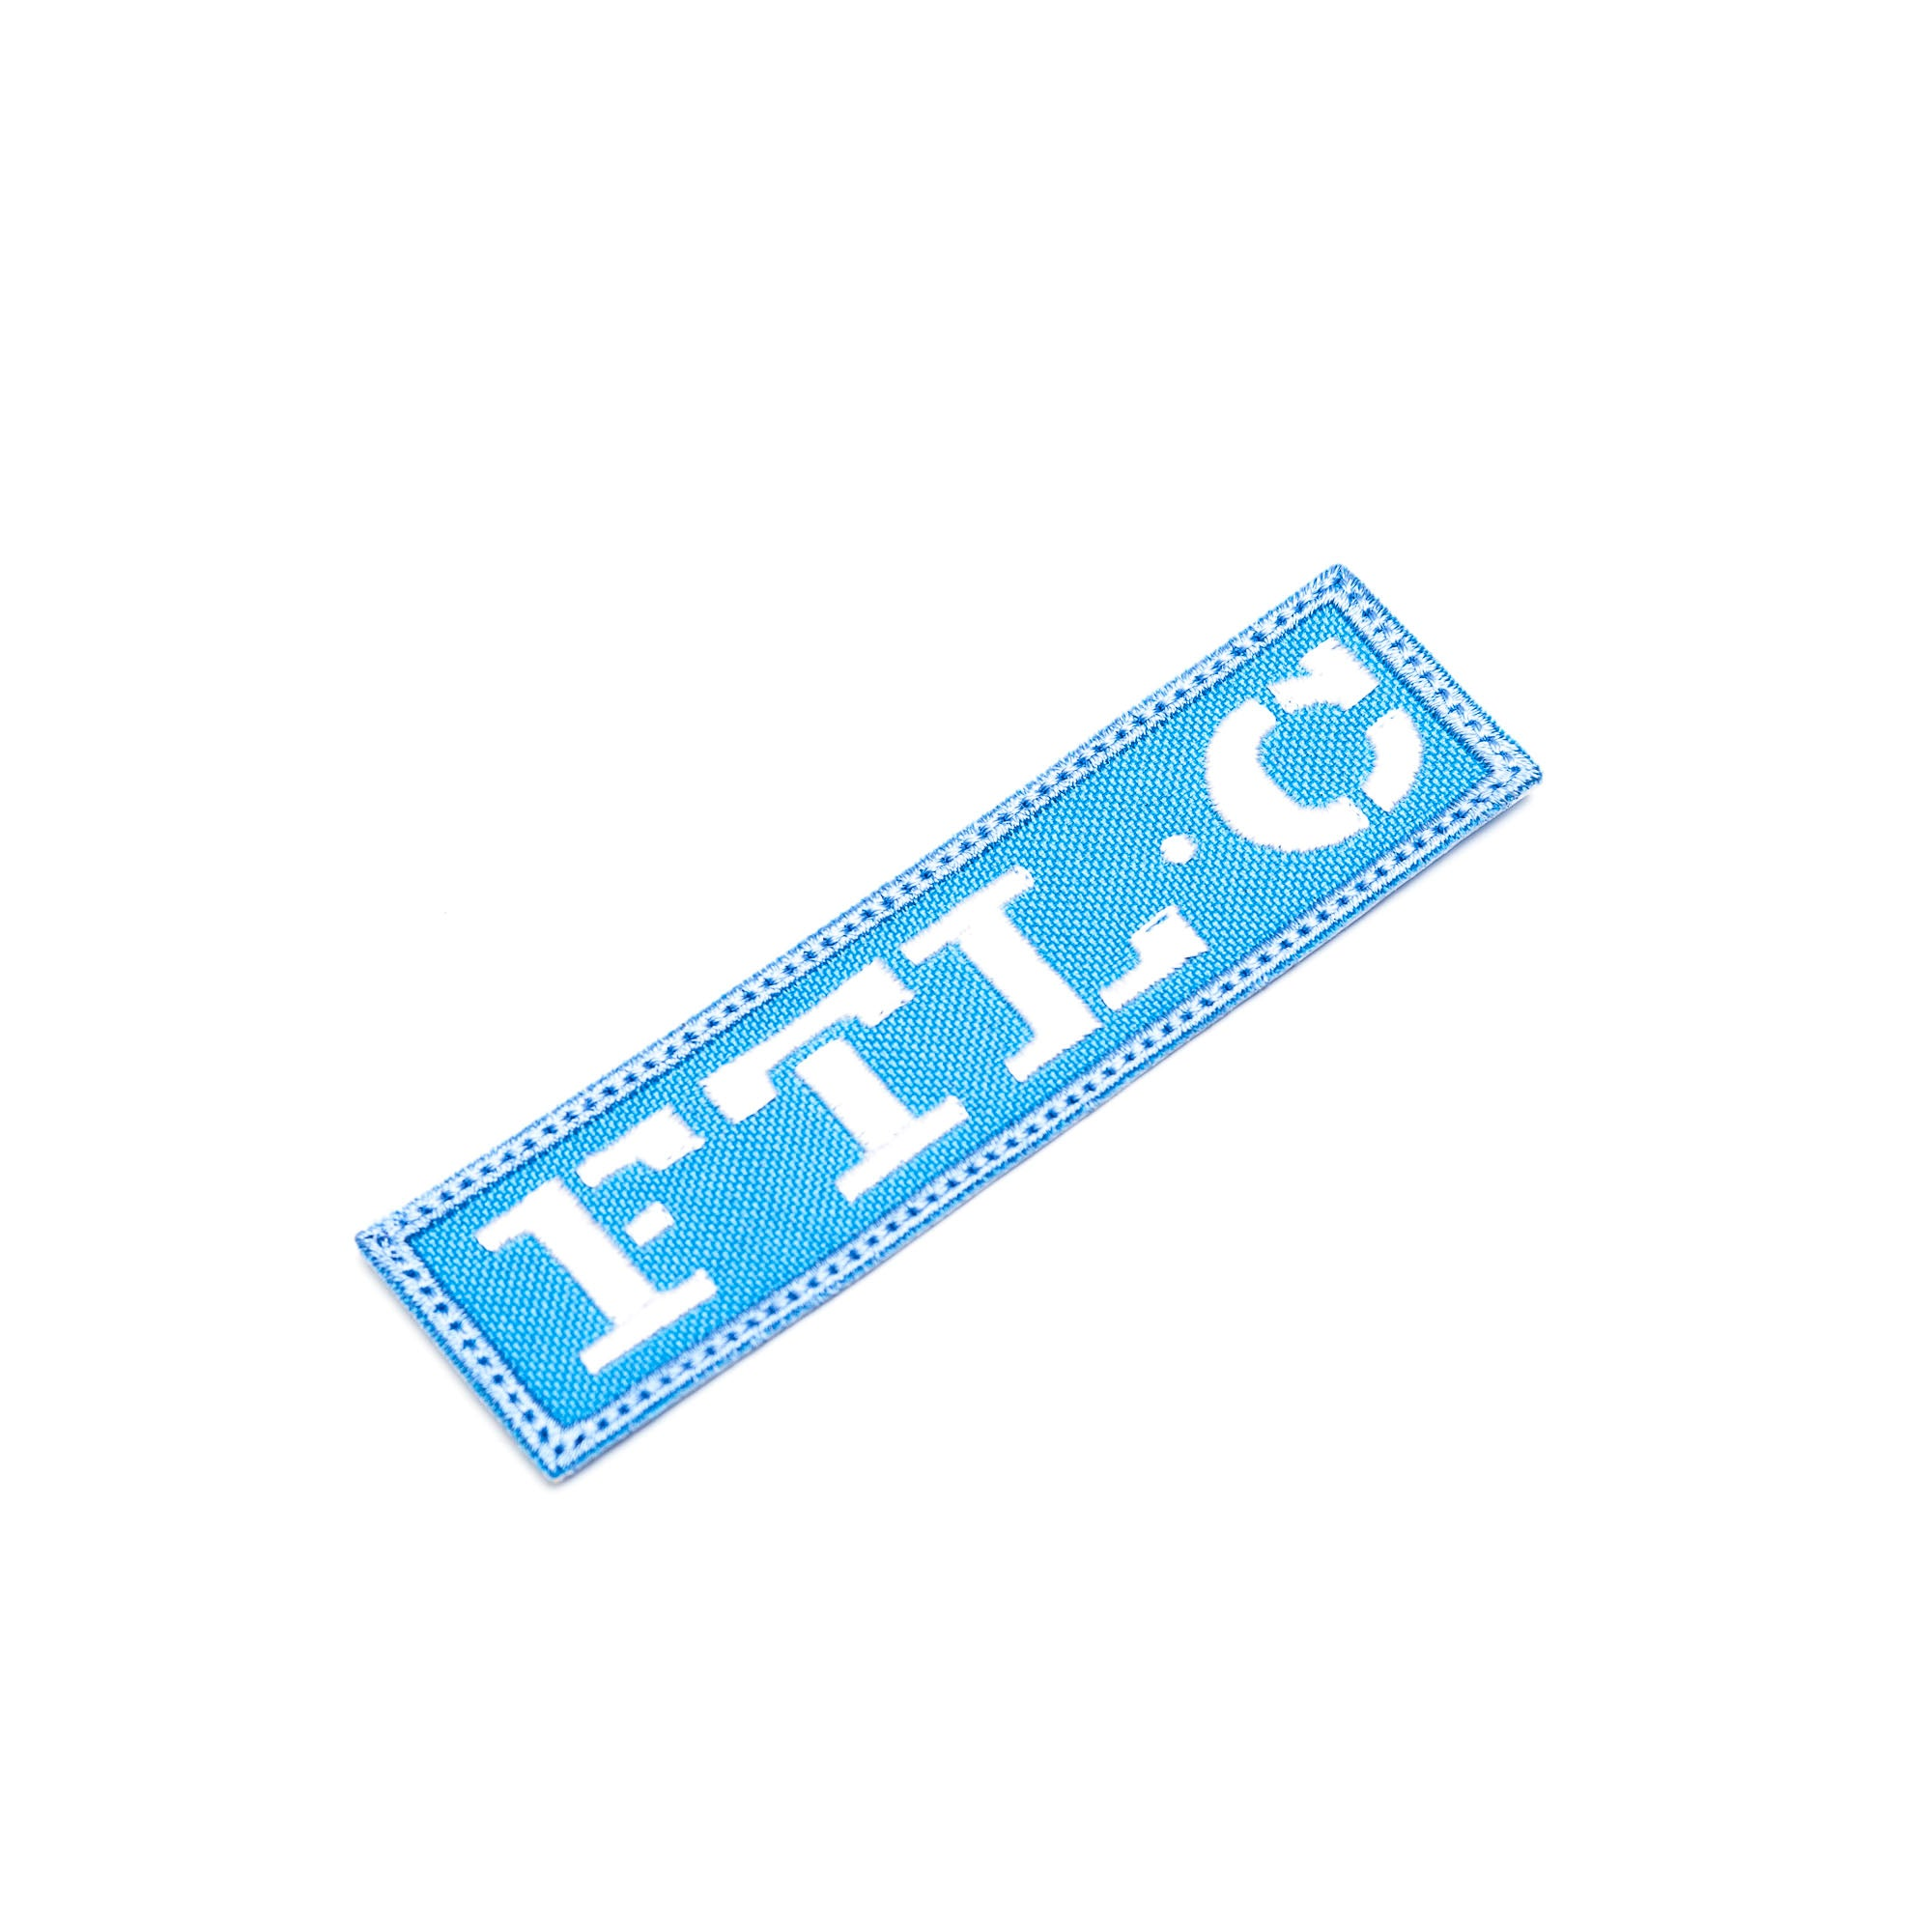 FTLC IRON-ON PATCH